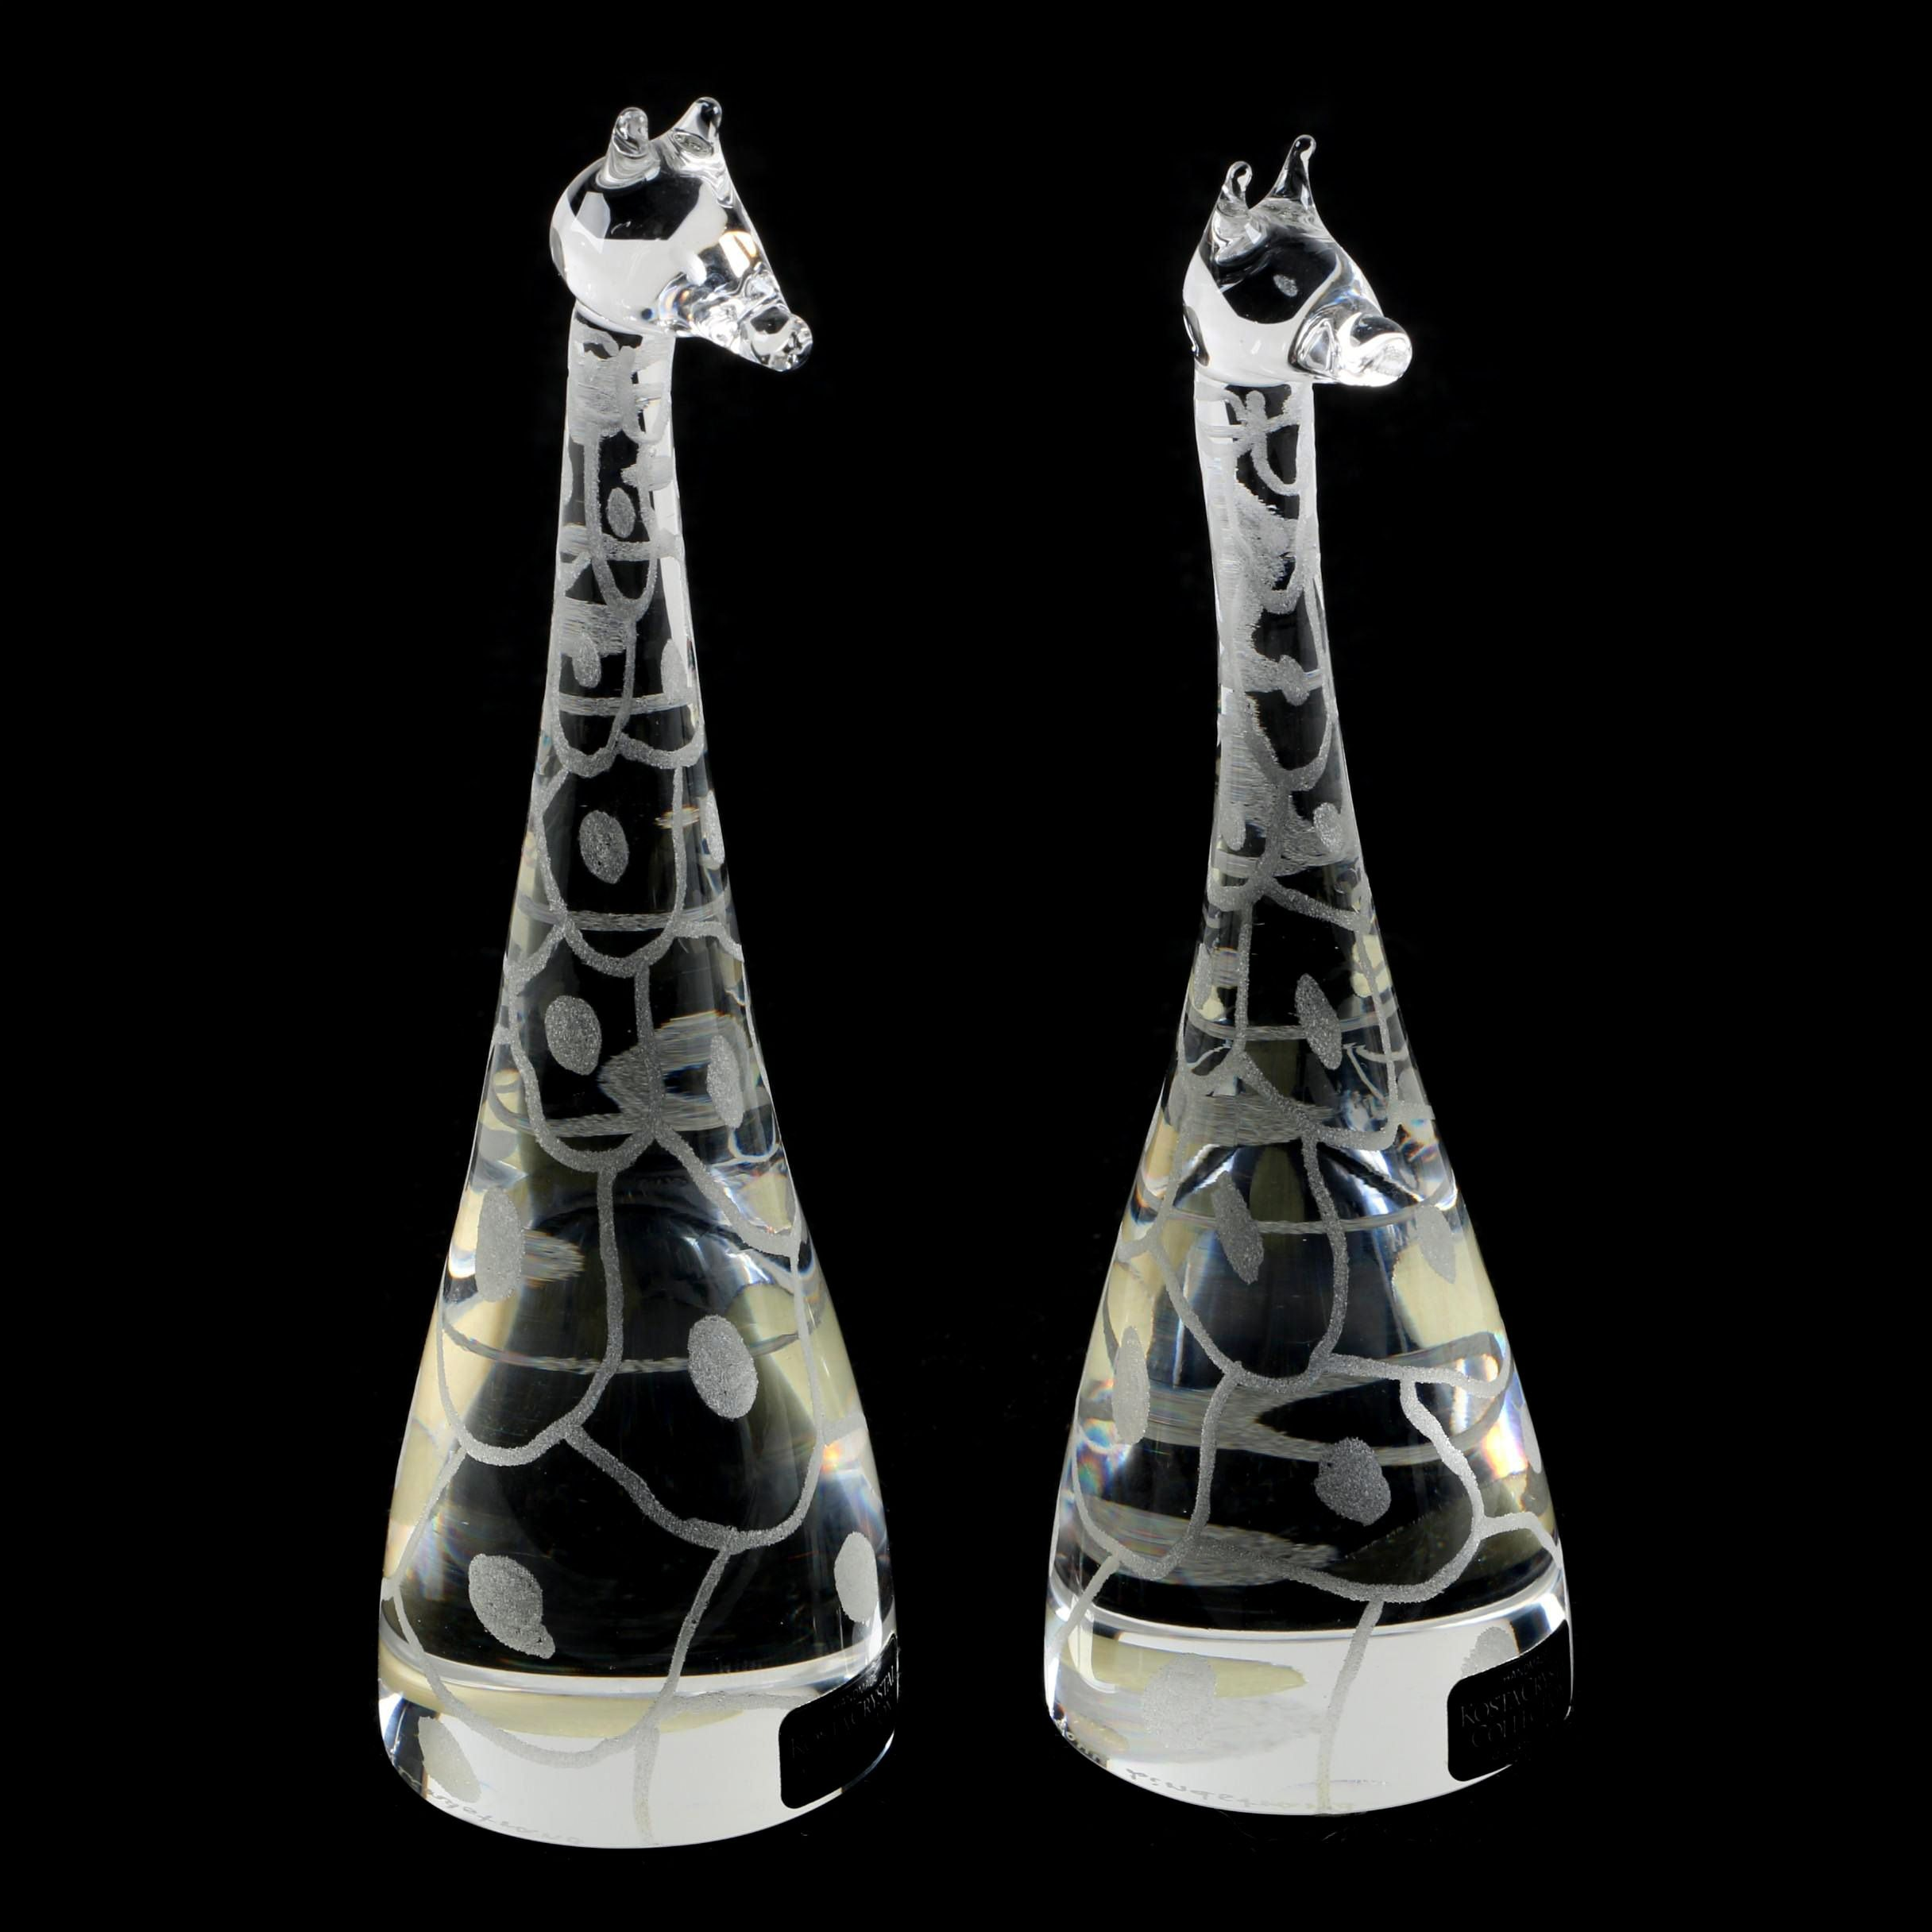 Vintage Kosta Crystal Collection Giraffe Figurines